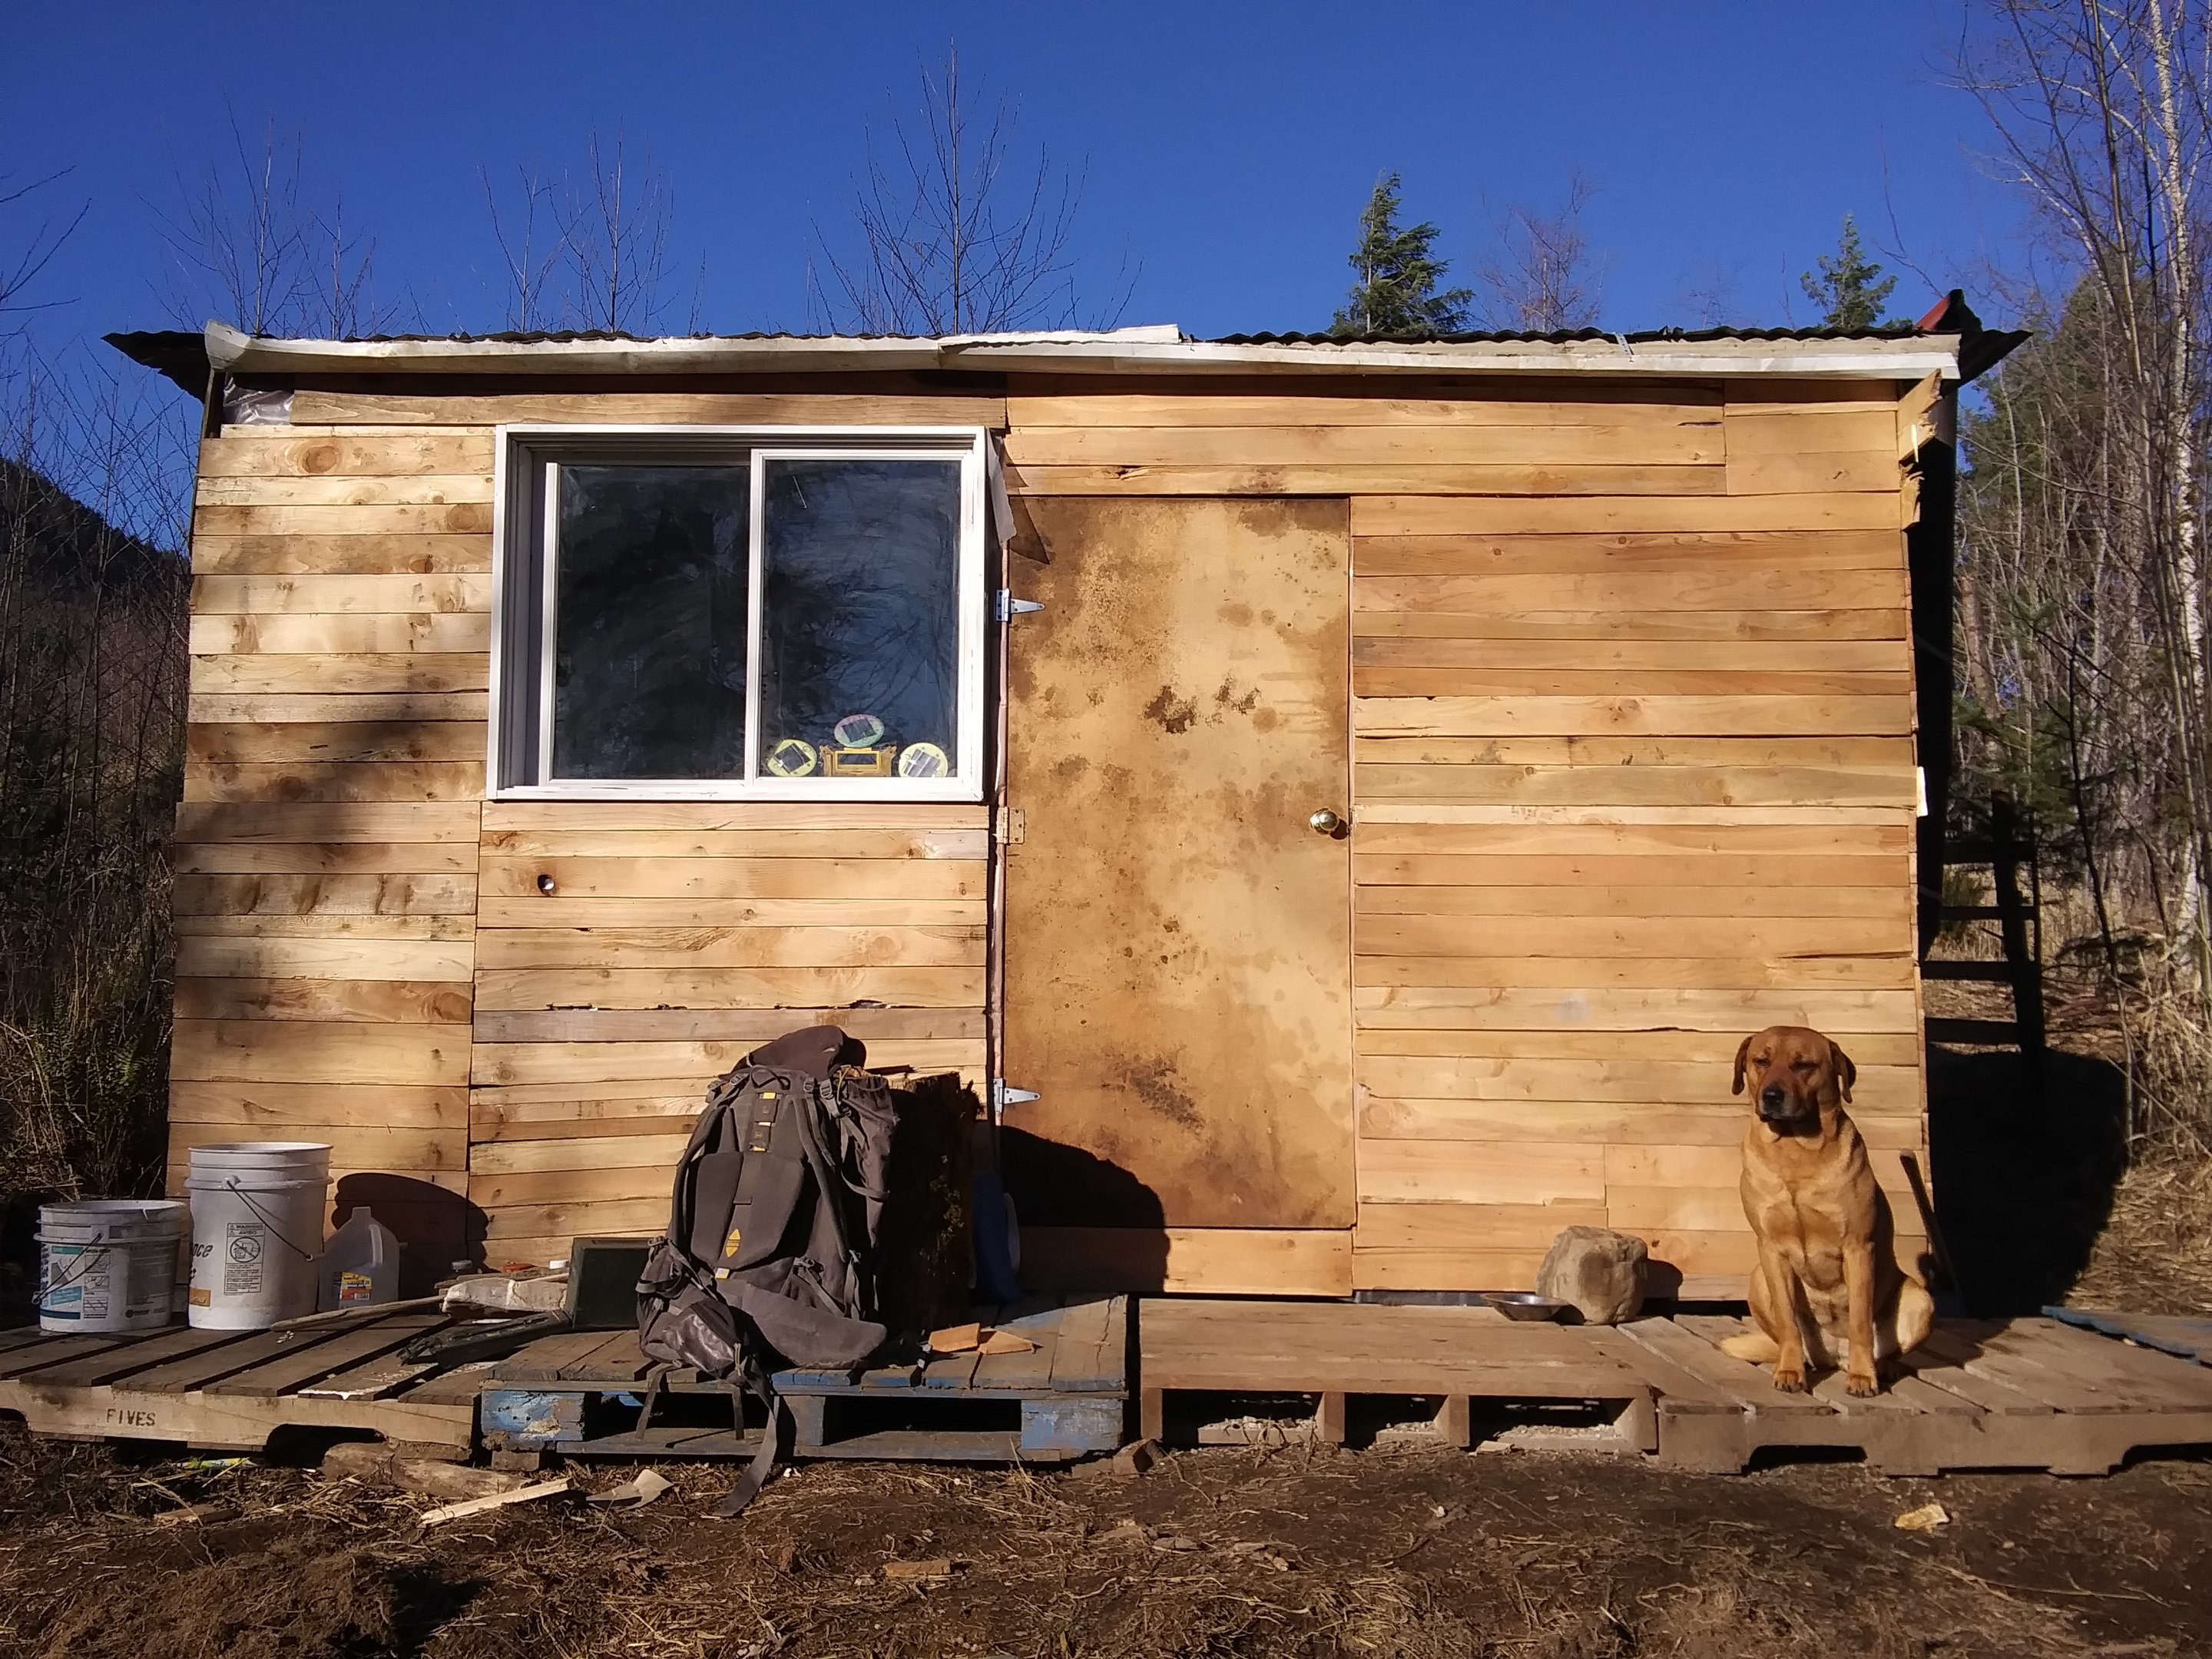 front-of-house-with-poop-door-jpg.52731_Off-Grid homesteadin' wing'n it yeh_Alternative Housing_Squat the Planet_12:24 PM